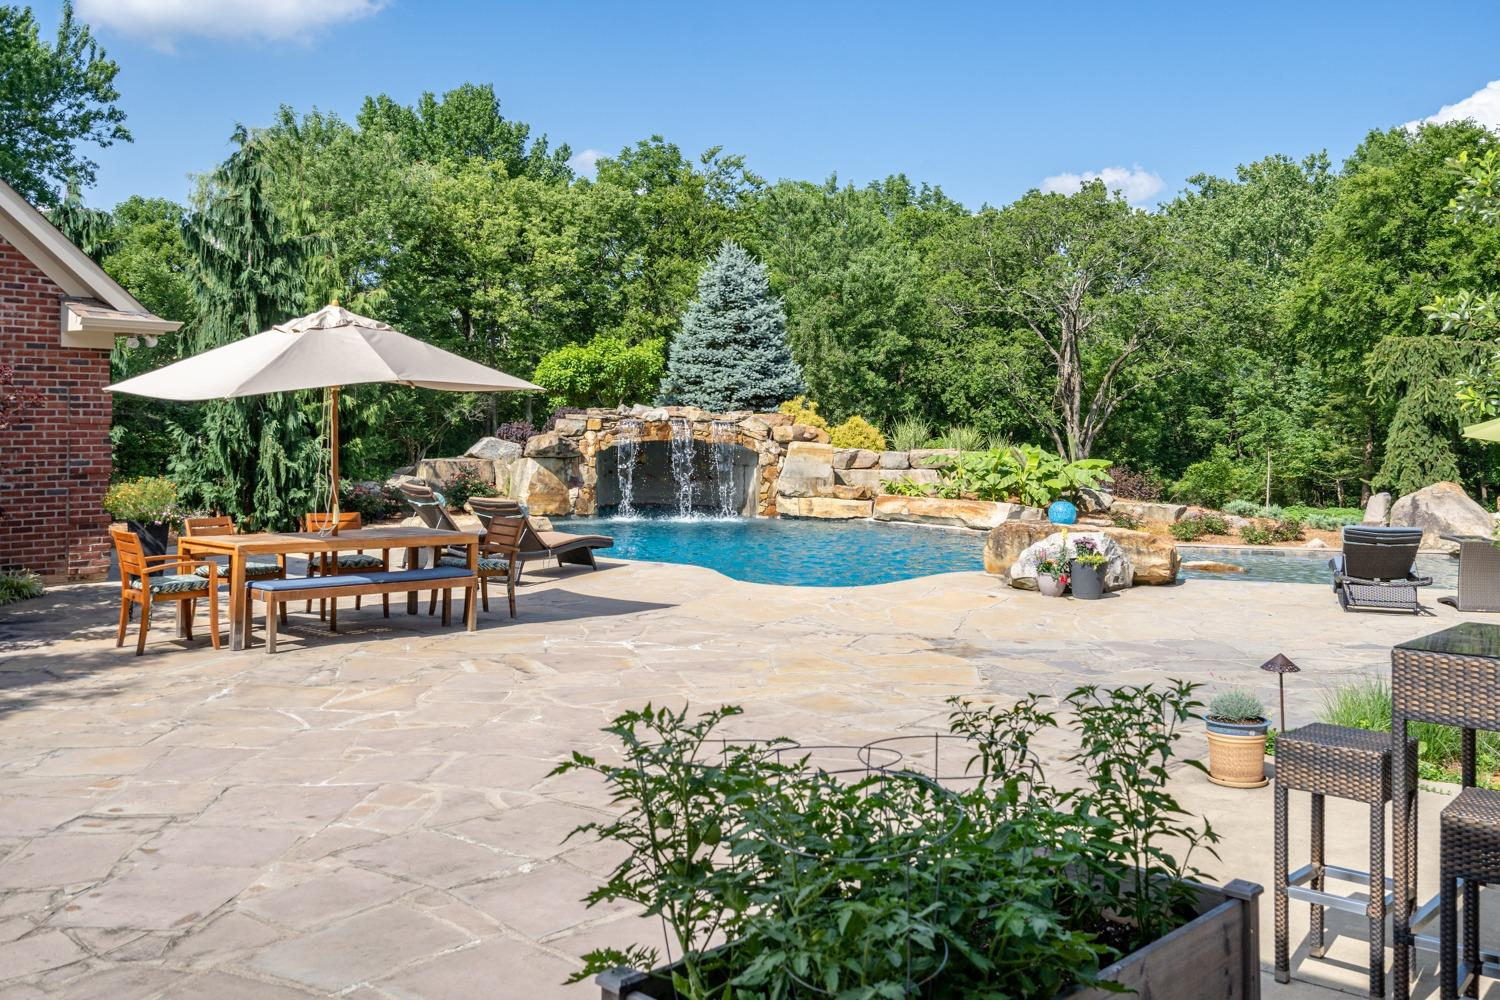 The very finest pool and setting! This 75,000 gallon gunite pool is complete with sun shelf, waterfall, and grotto. And the massive boulders are courtesy of the Buena Vista quarry… the same quarry that produced the rock used in the construction of the John A. Roebling bridge.